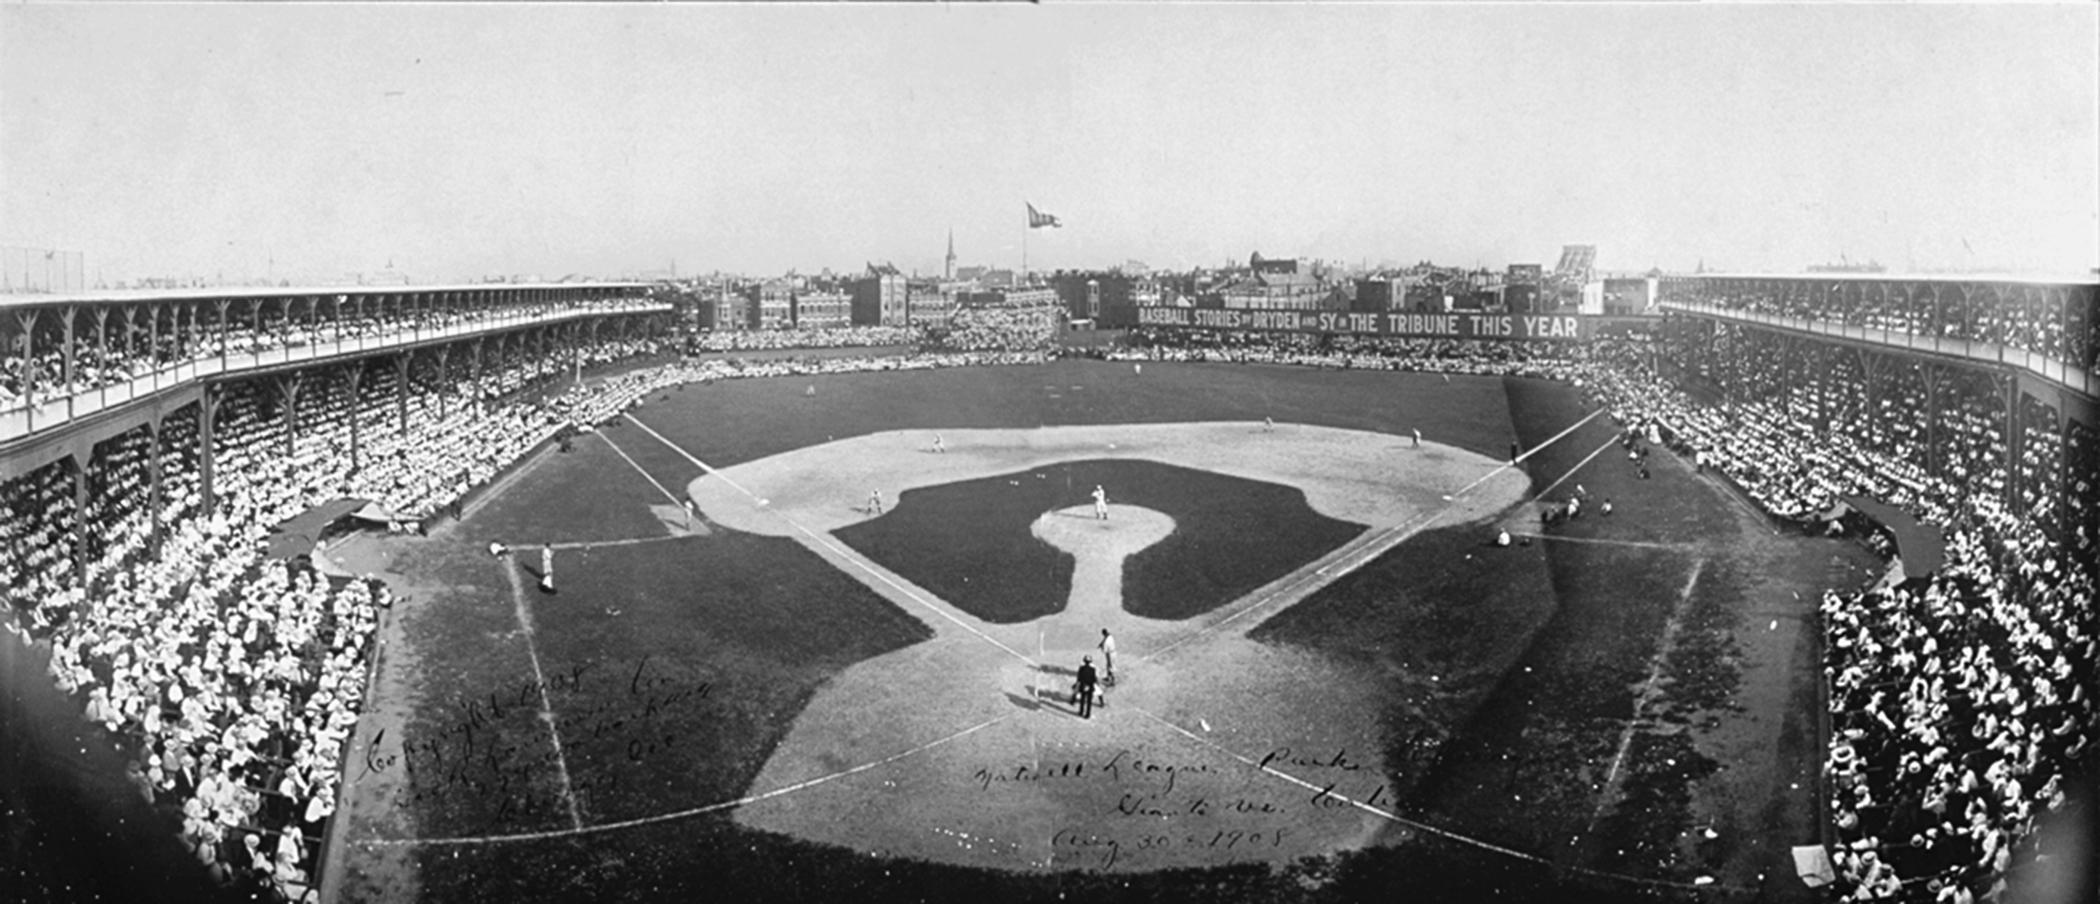 Before there was a Wrigley Field on Chicago's North Side, the Cubs played all their home games at the West Side Grounds, located on a block bounded by Taylor, Wood, Polk, and Lincoln (now Wolcott) streets. The standing-room-only crowd at this August 30, 1908, game against archrival New York Giants was typical. (Bain Collection, Library of Congress)